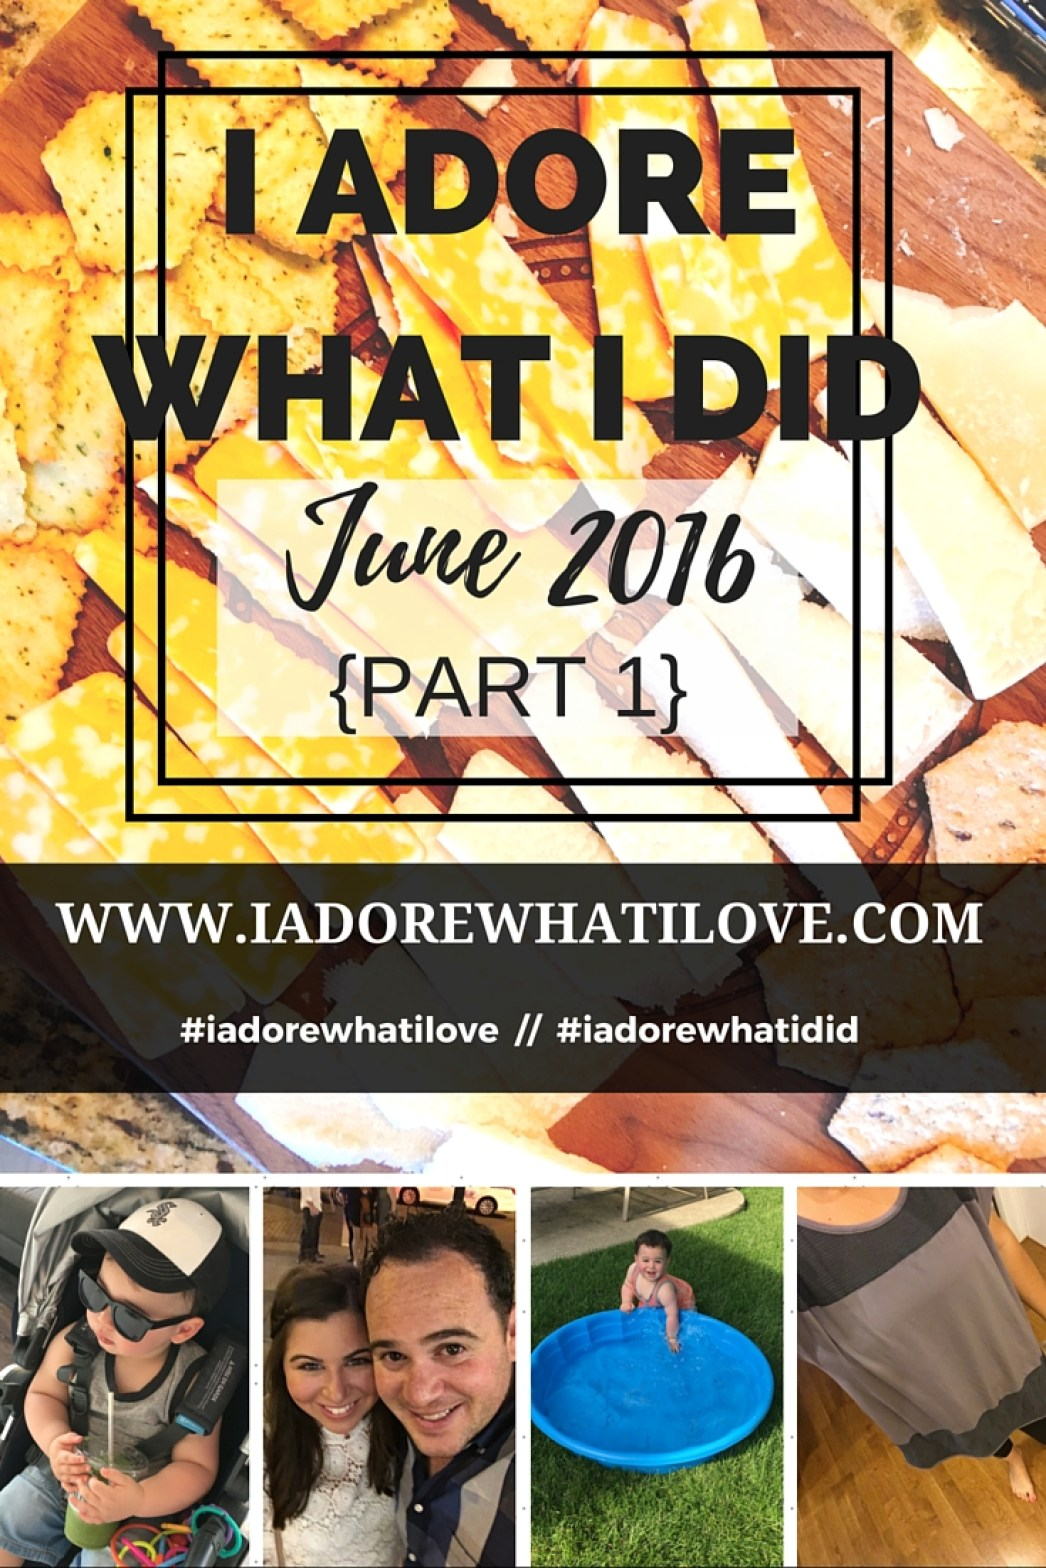 I Adore What I Love Blog // I ADORE WHAT I LOVE JUNE 2014 // www.iadorewhatilove.com #iadorewhatilove